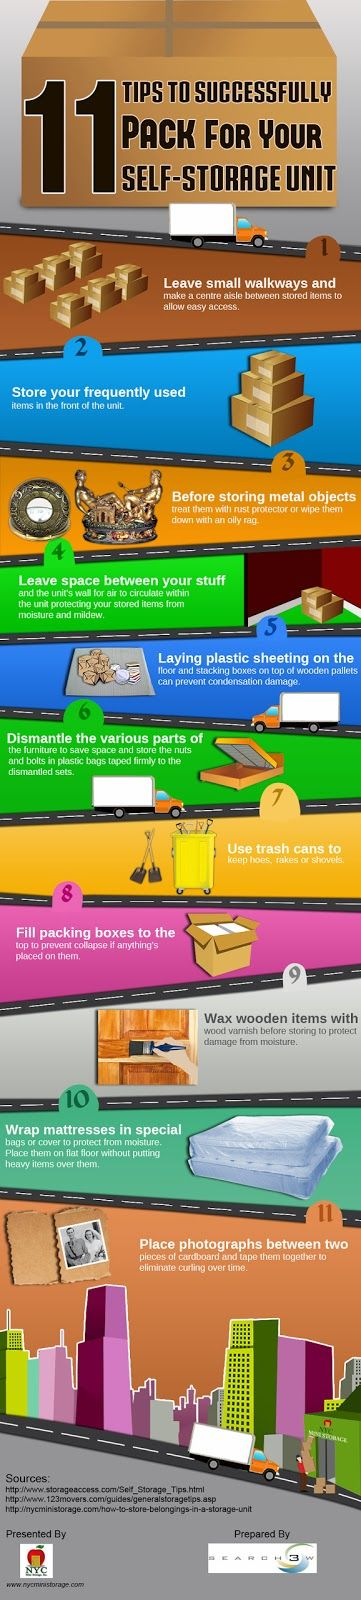 A leading NewYork based storage services provider, NYCMinistorage has released a new infographic. The infographic titled '11 Tips To Successfully Pack For Your Self Storage Unit' throws a light on giving guidance to prospective storage unit renters about the steps they can take to keep their stored items in good condition.